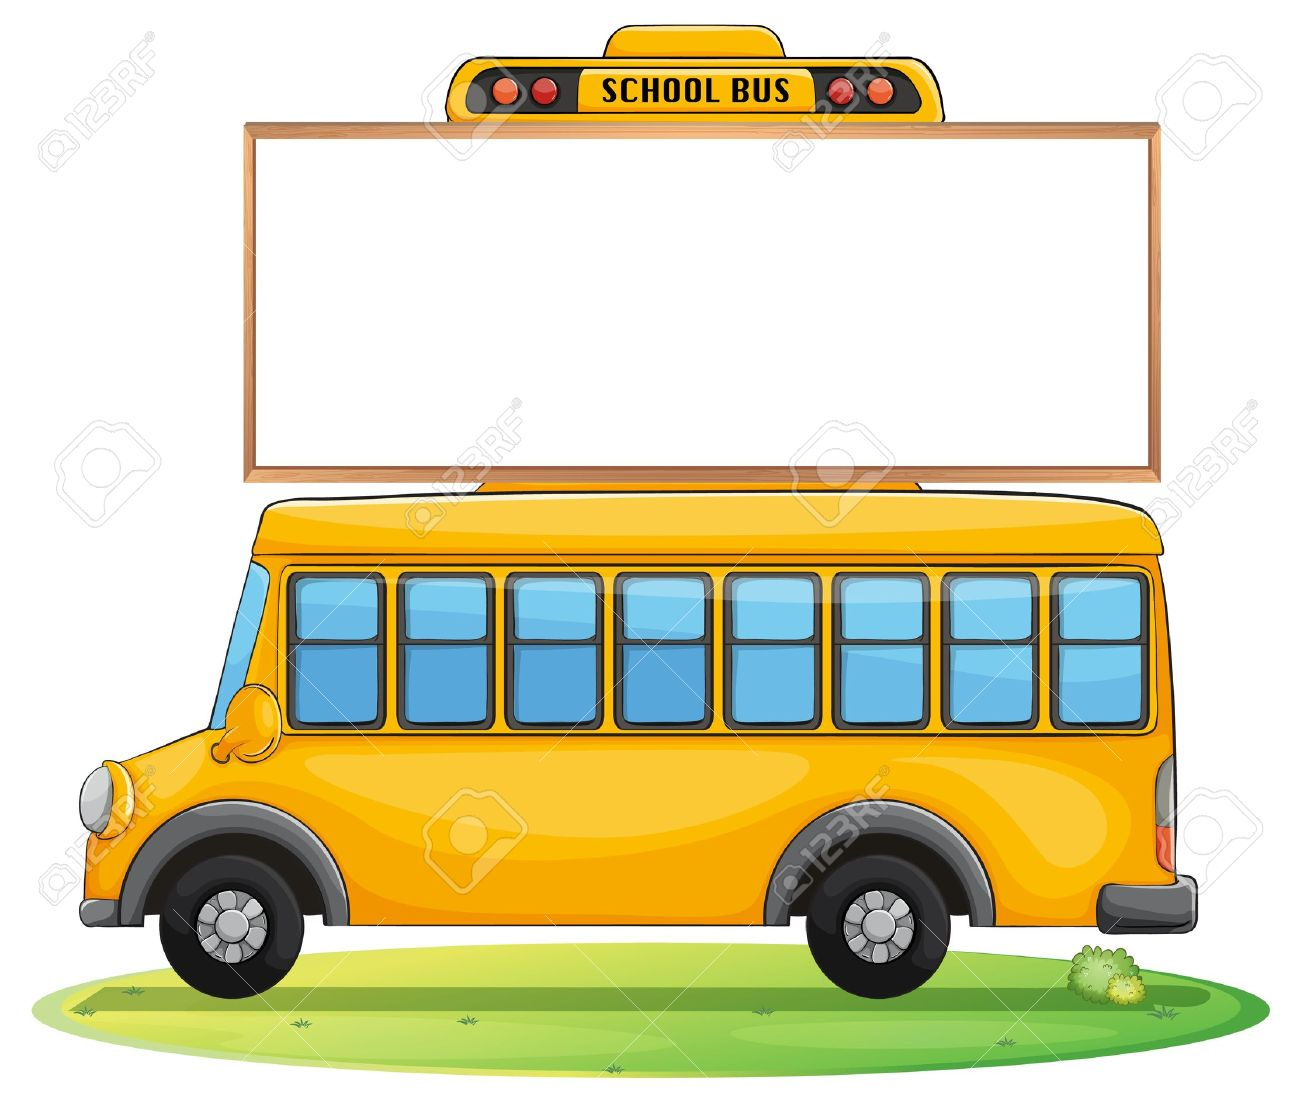 illustration of a school bus and board on road royalty free cliparts rh 123rf com Freightliner Bluebird School Bus Speeding School Bus Clip Art